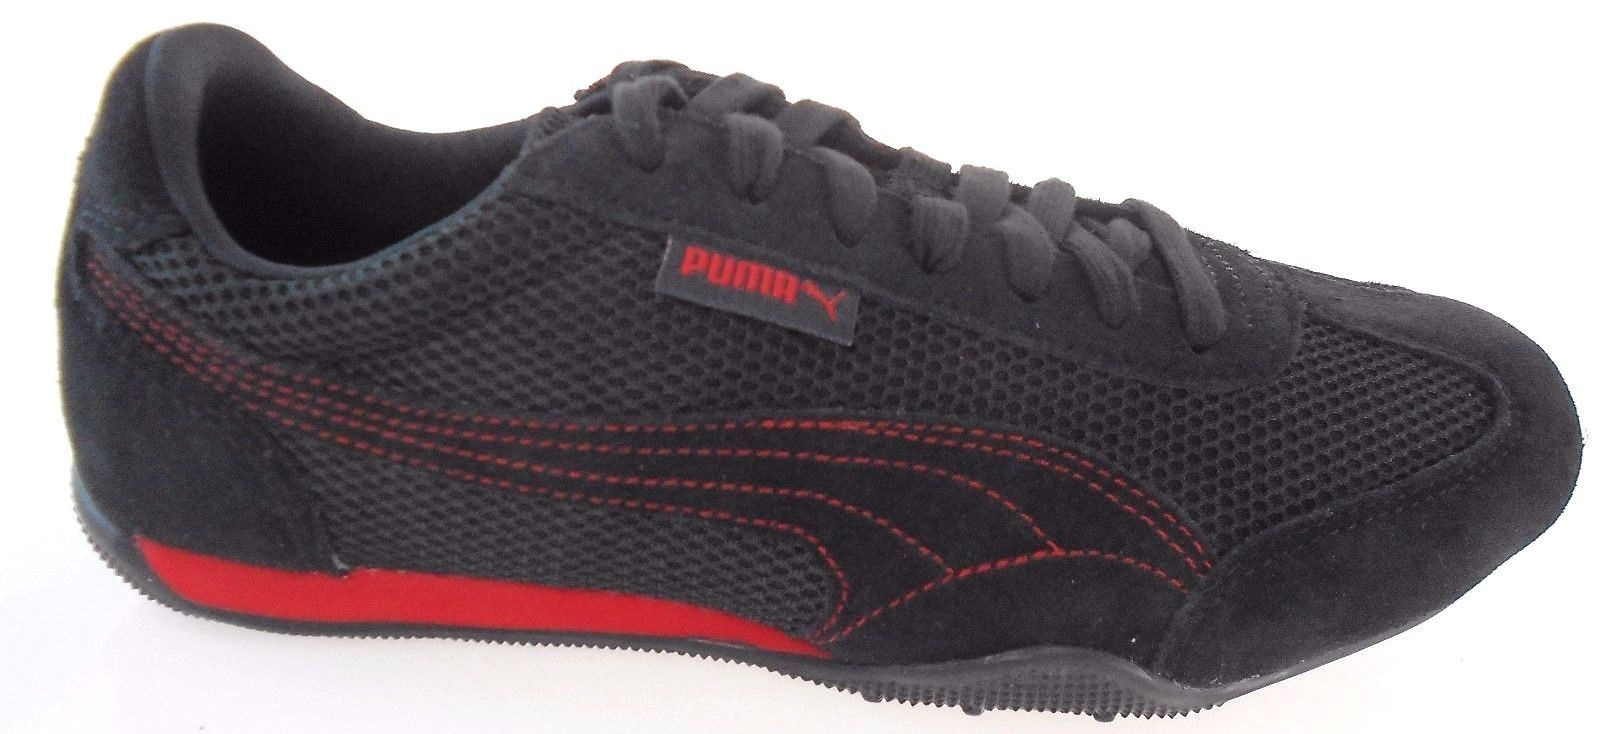 Puma 76 Runner Mesh Men's BLACKRED Shoes and 50 similar items